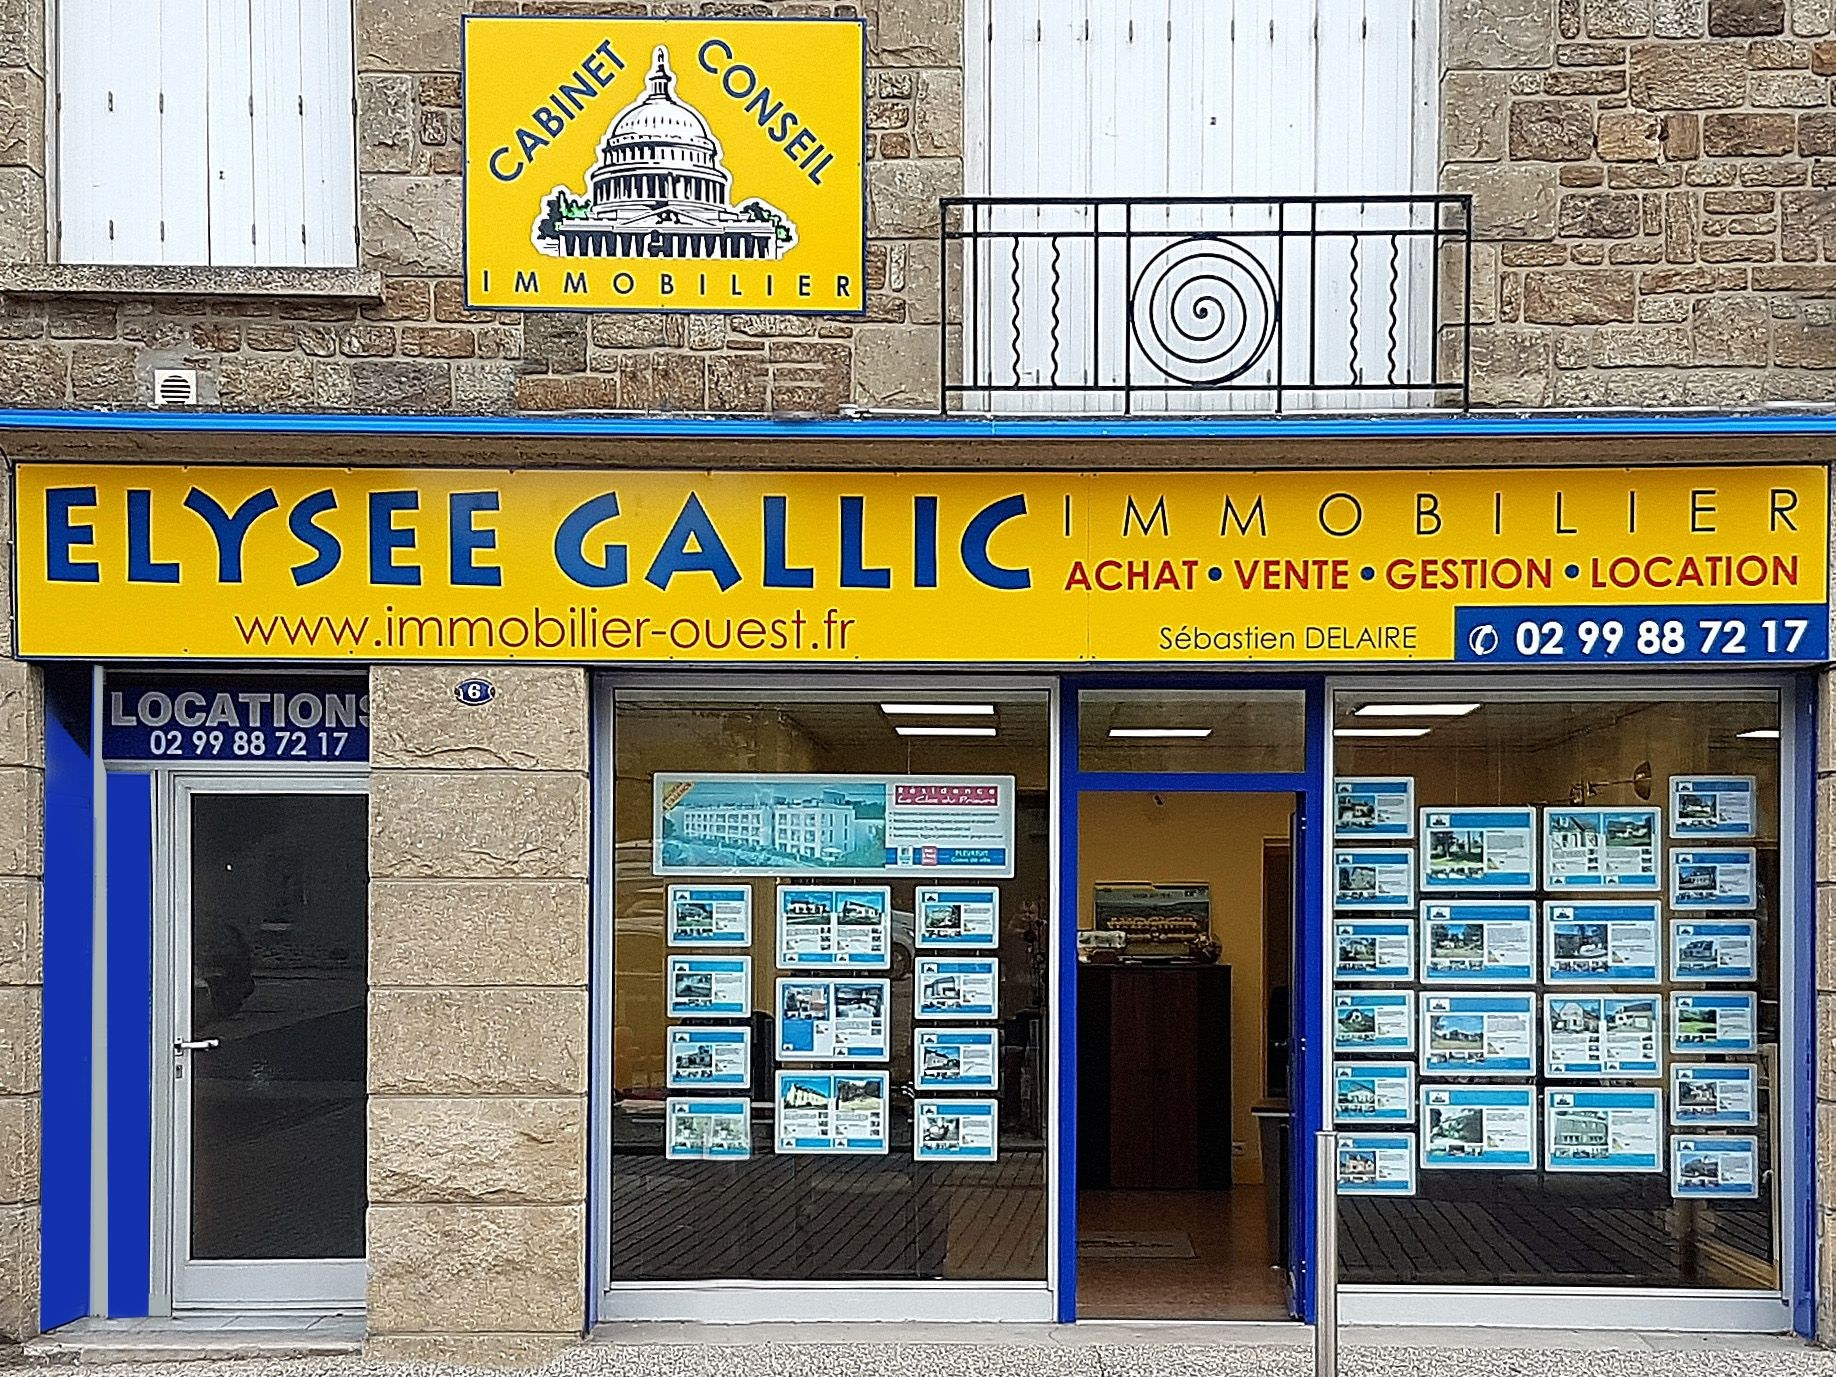 ELYSEE GALLIC IMMOBILIER - VENTES